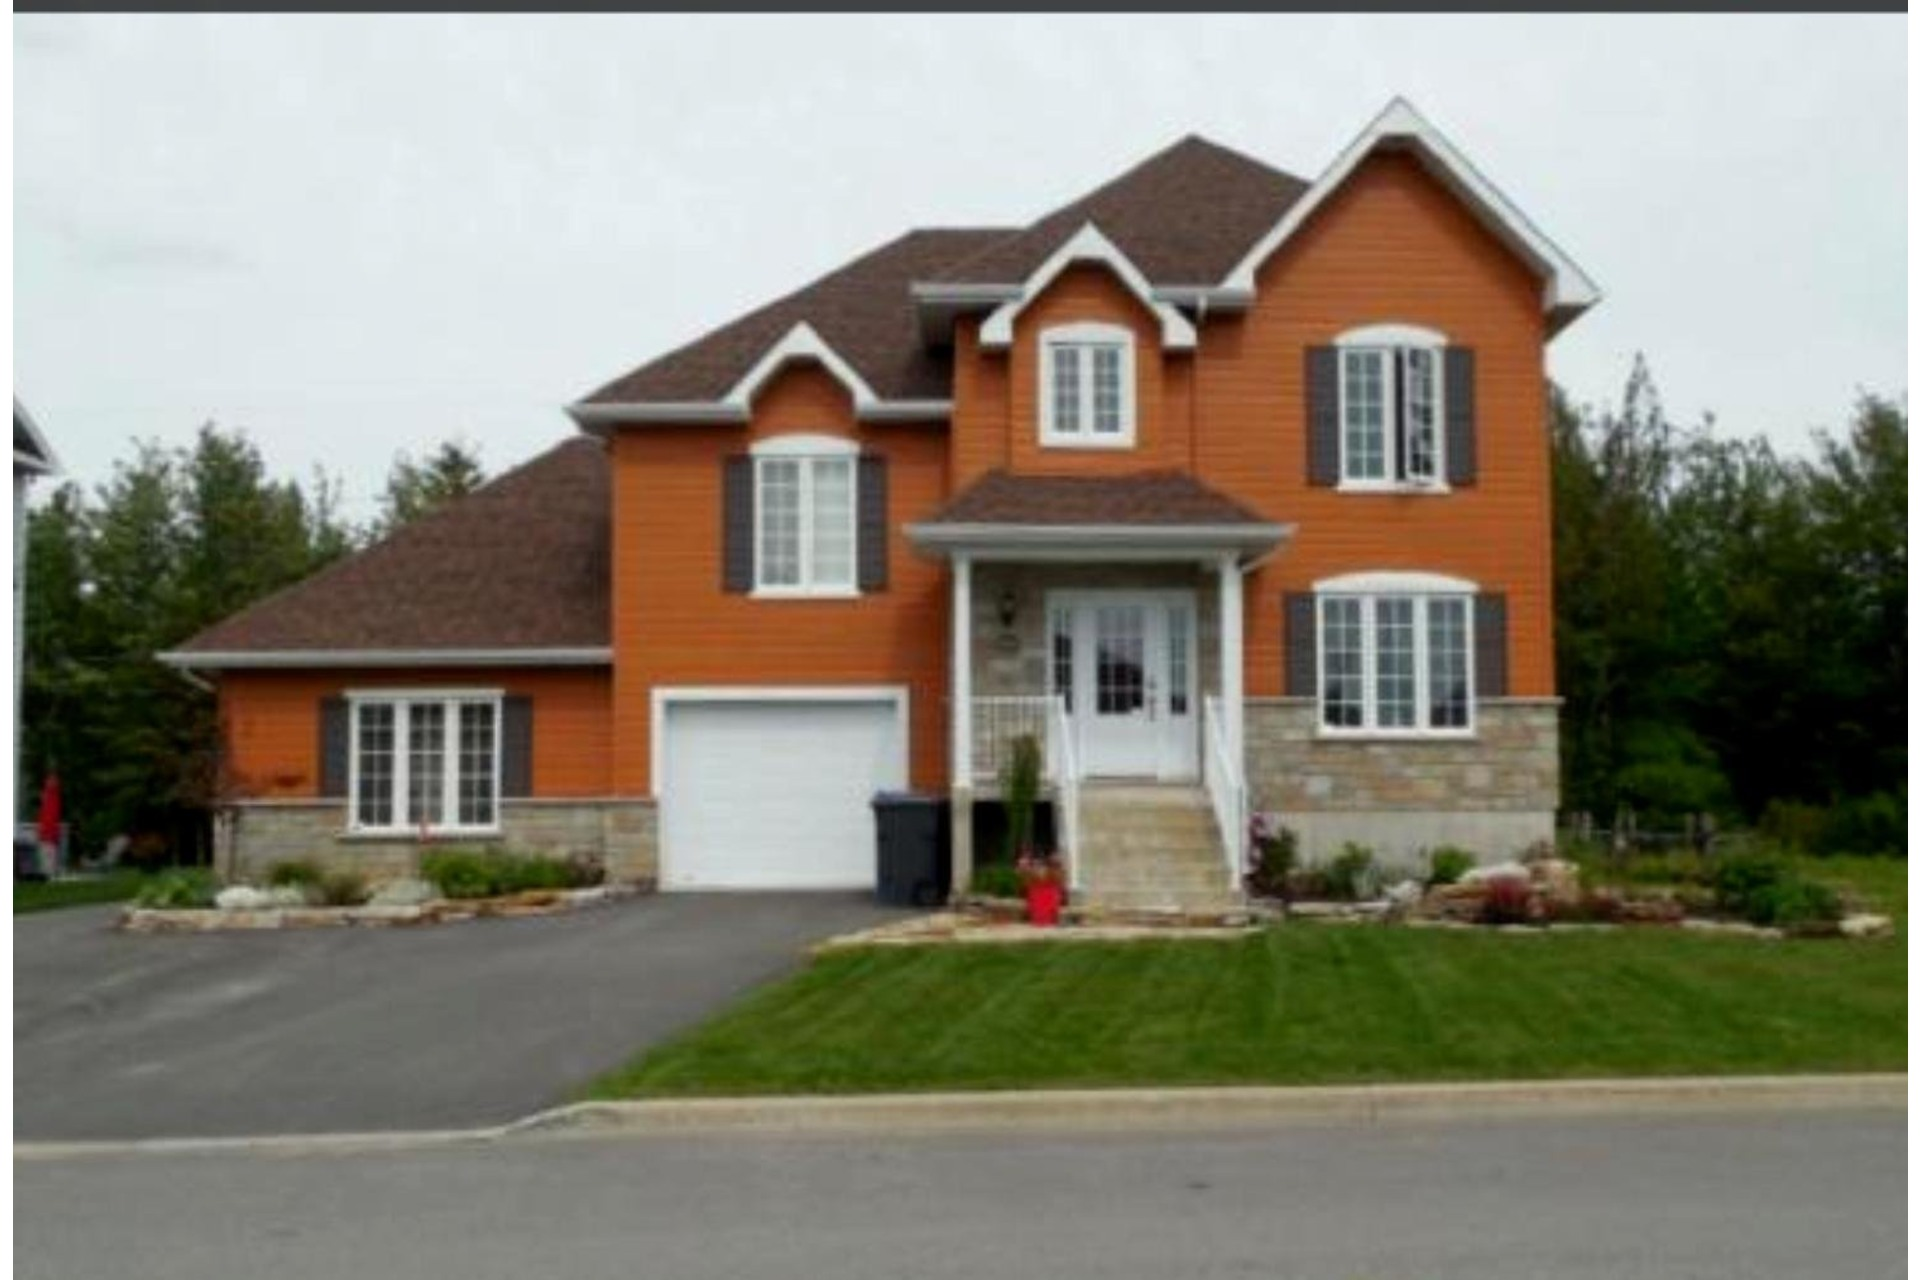 image 37 - House For sale Notre-Dame-des-Prairies - 12 rooms